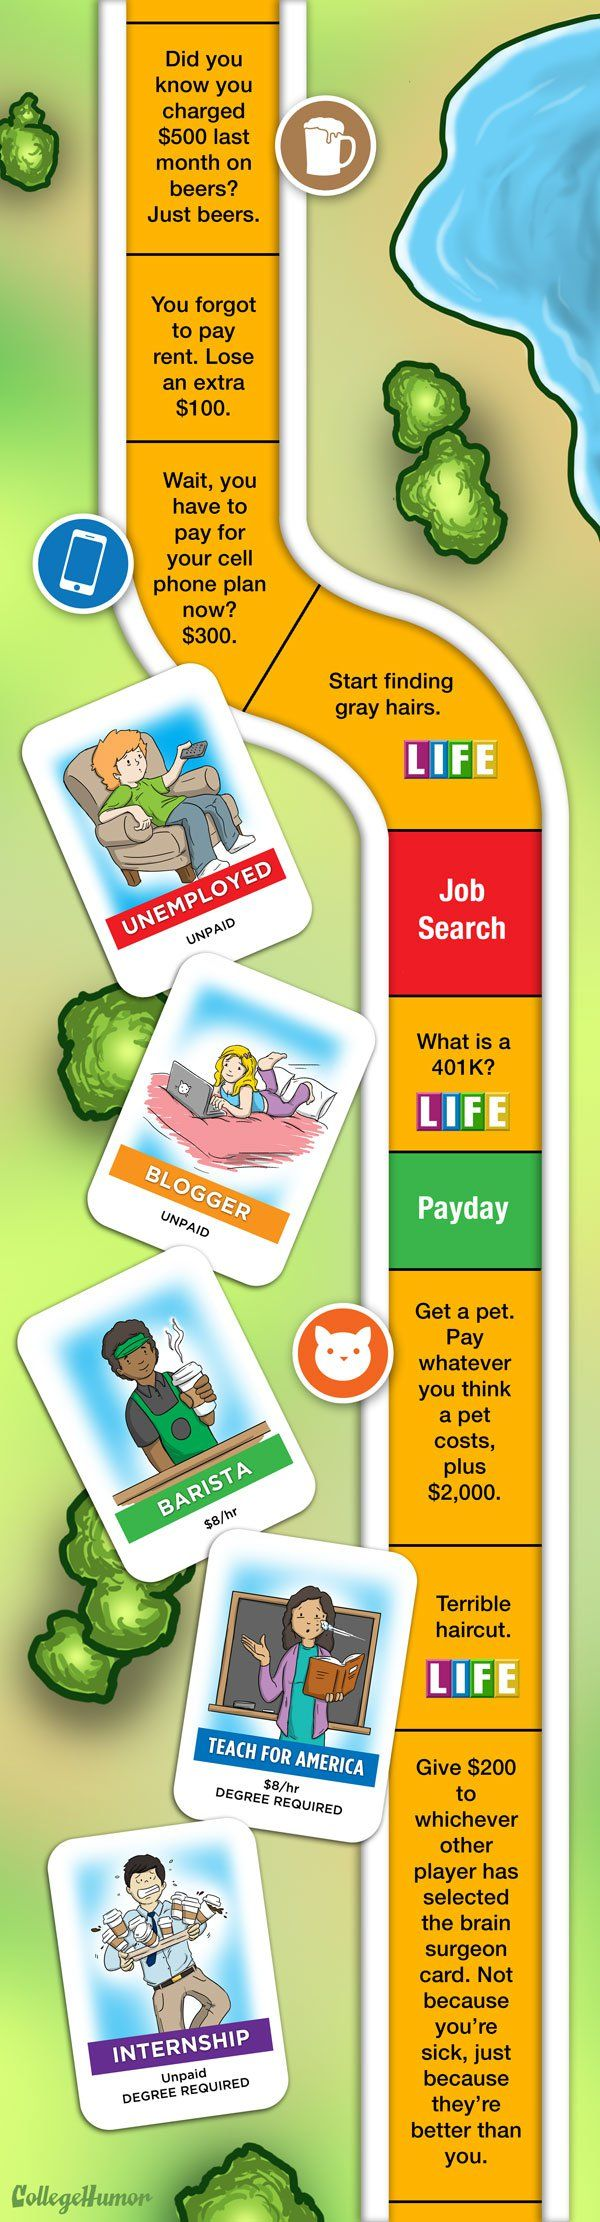 Honest Game of Life - Image 2